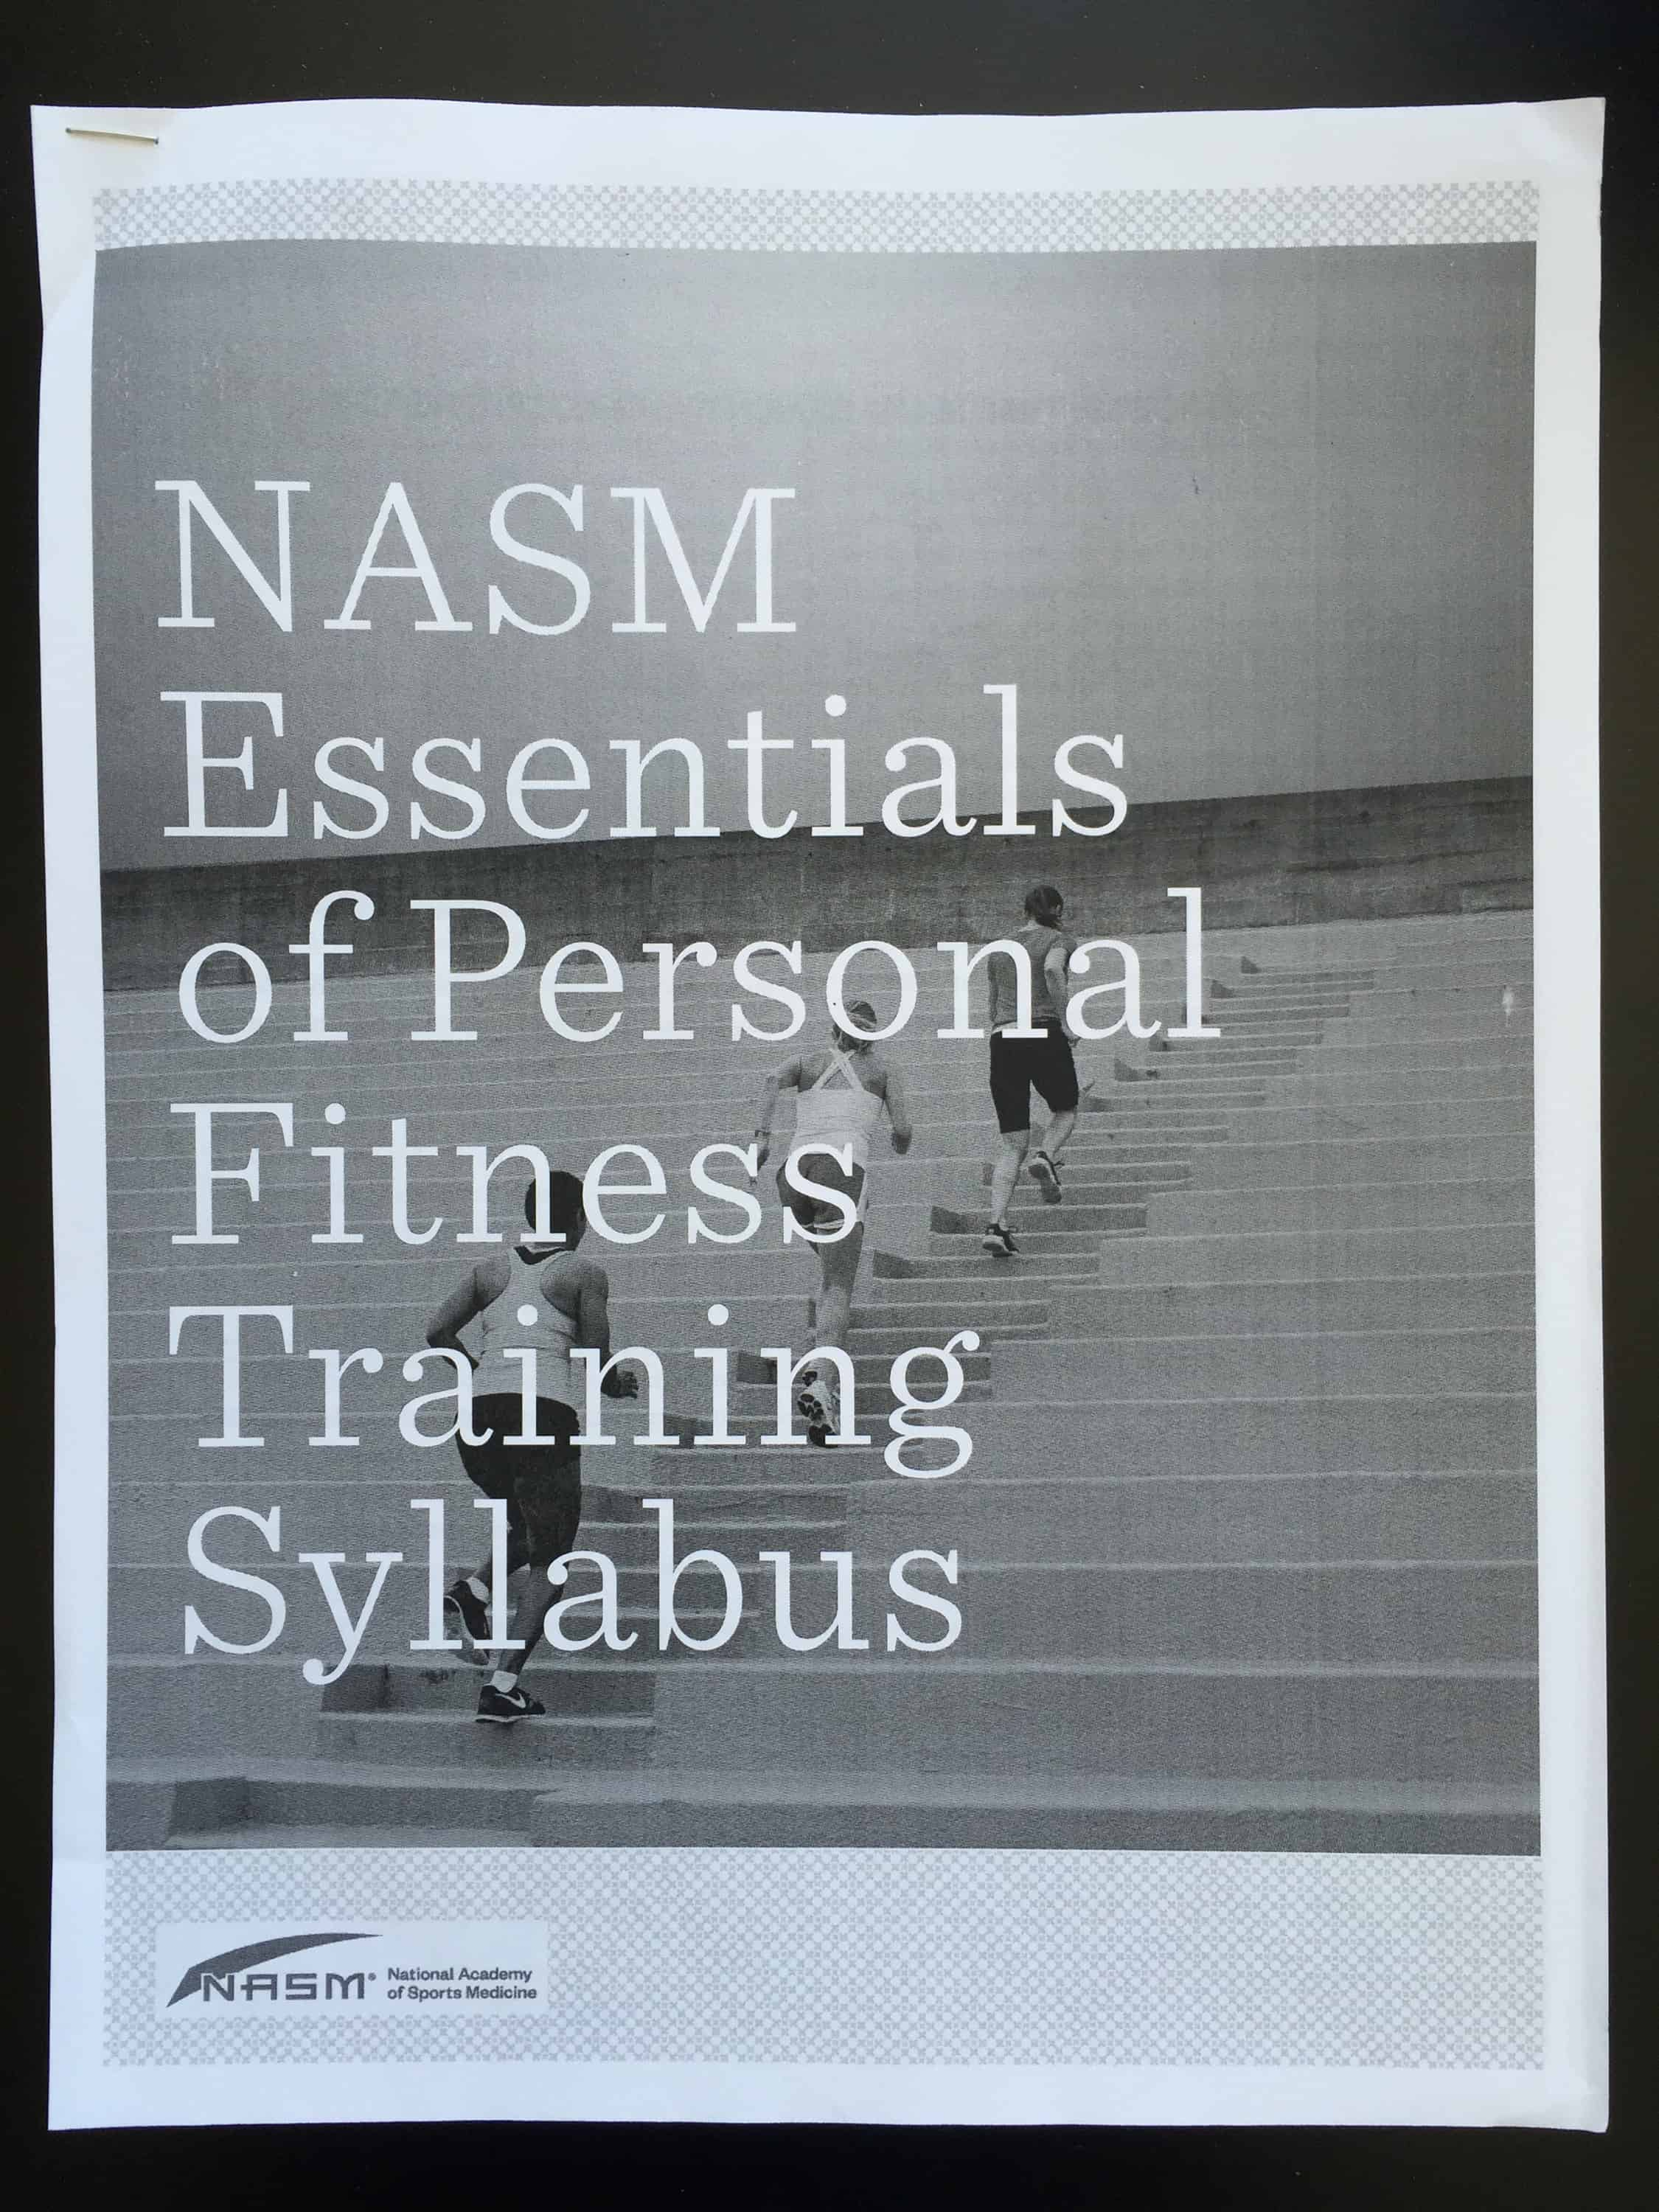 Passing the nasm certified personal training exam erins inside job img2733g xflitez Gallery